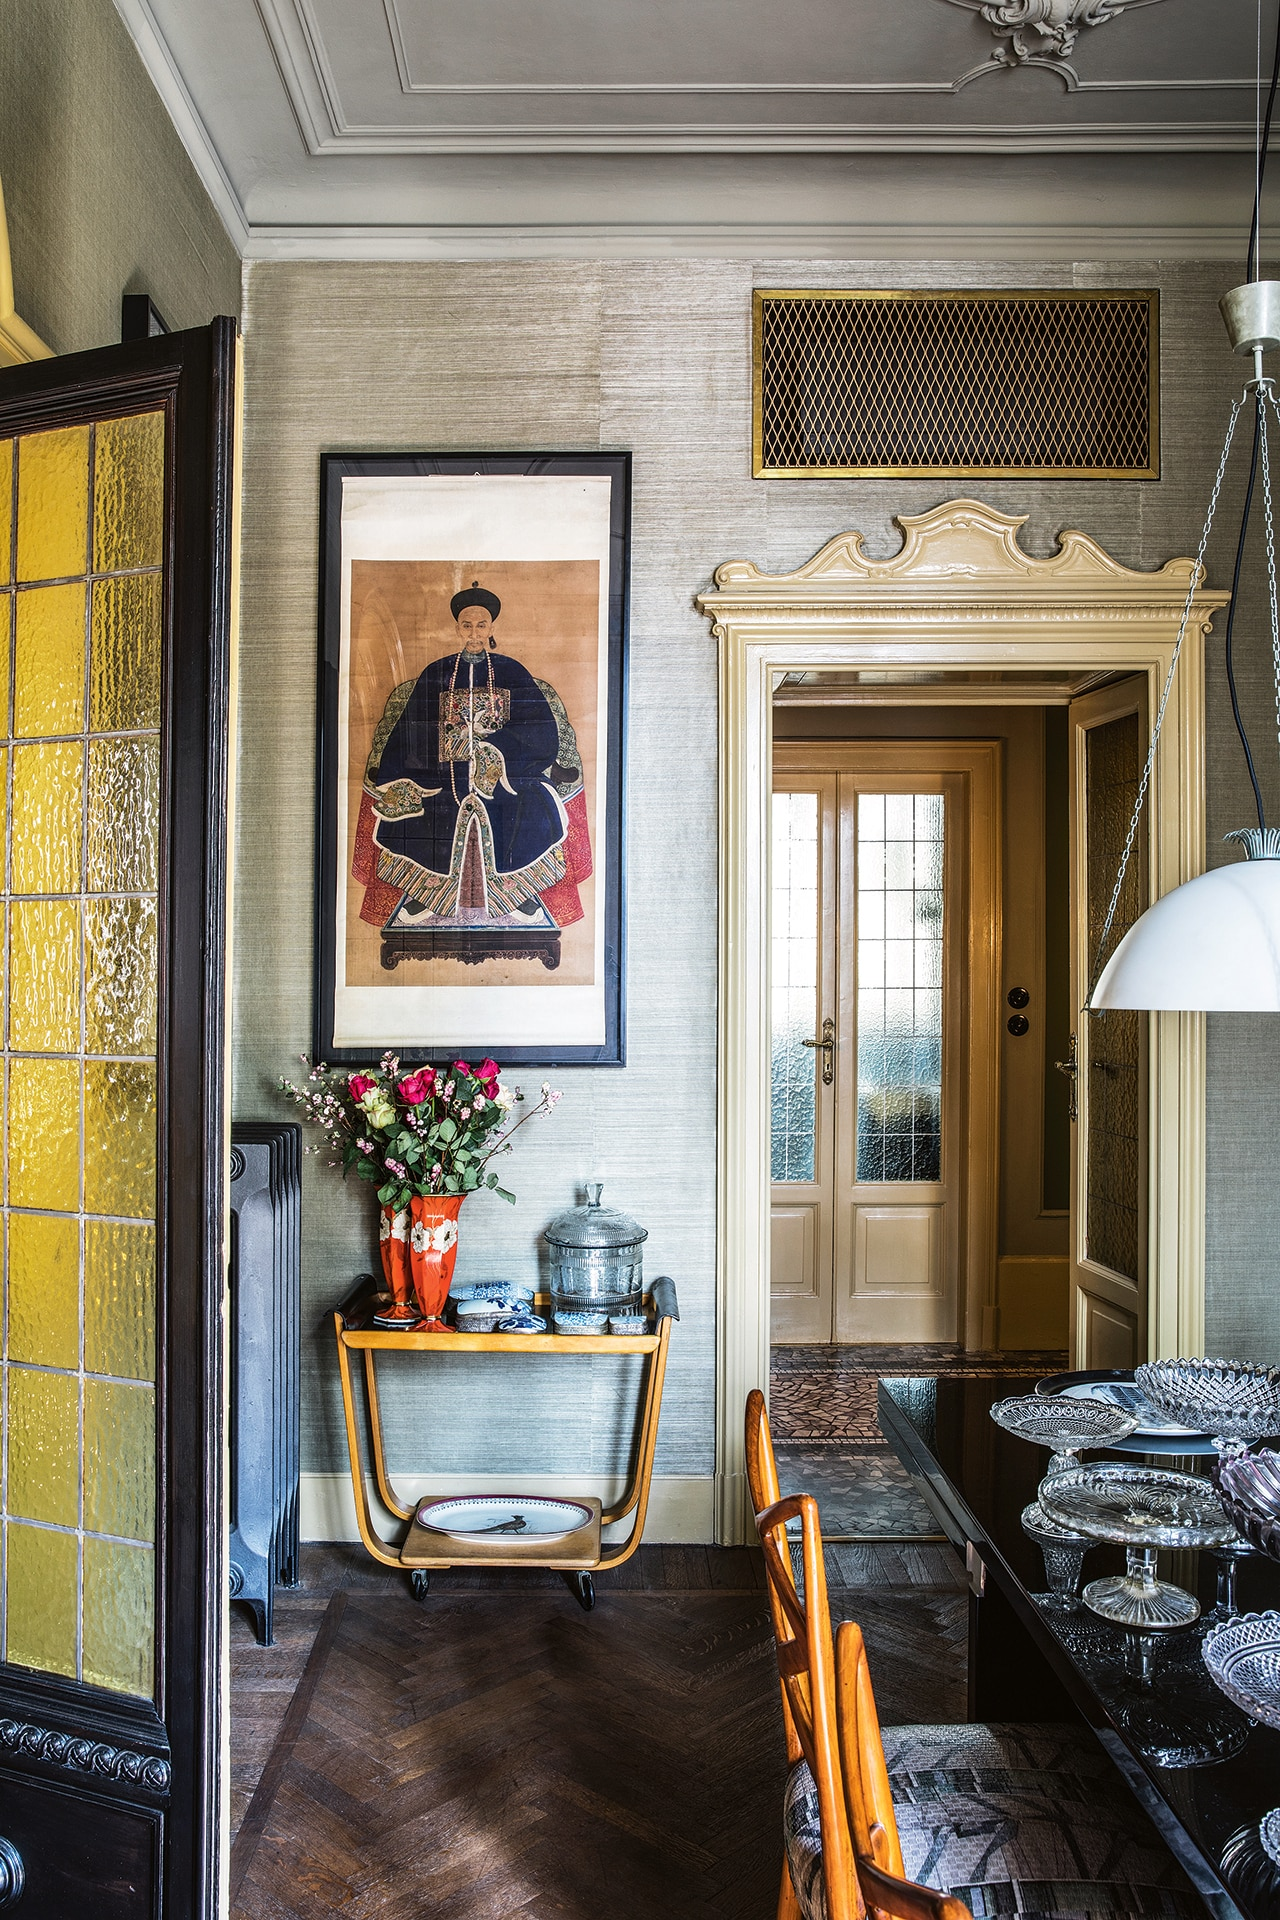 House tour: the delightfully eclectic home of Dimore Studio's founders